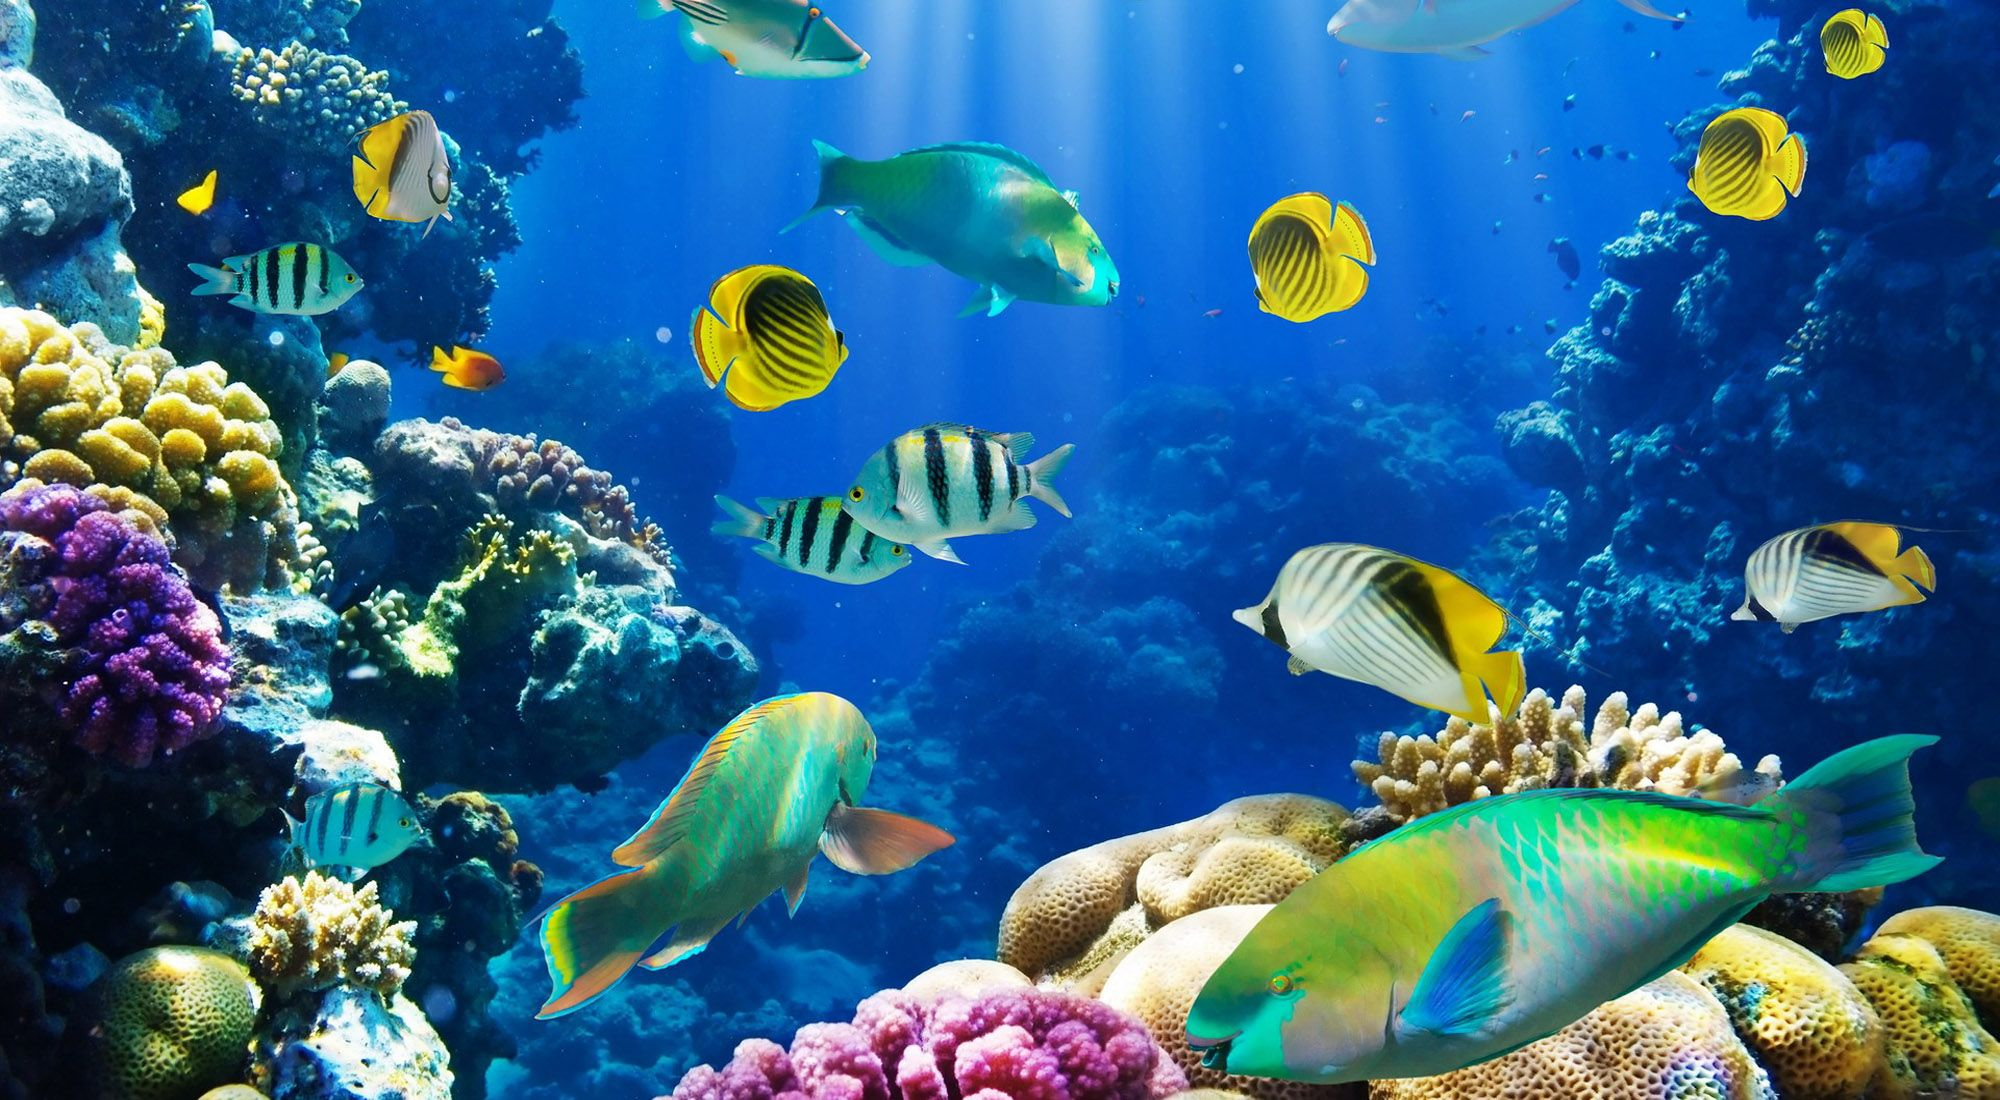 Hd fish wallpapers find best latest hd fish wallpapers in - Underwater desktop background ...